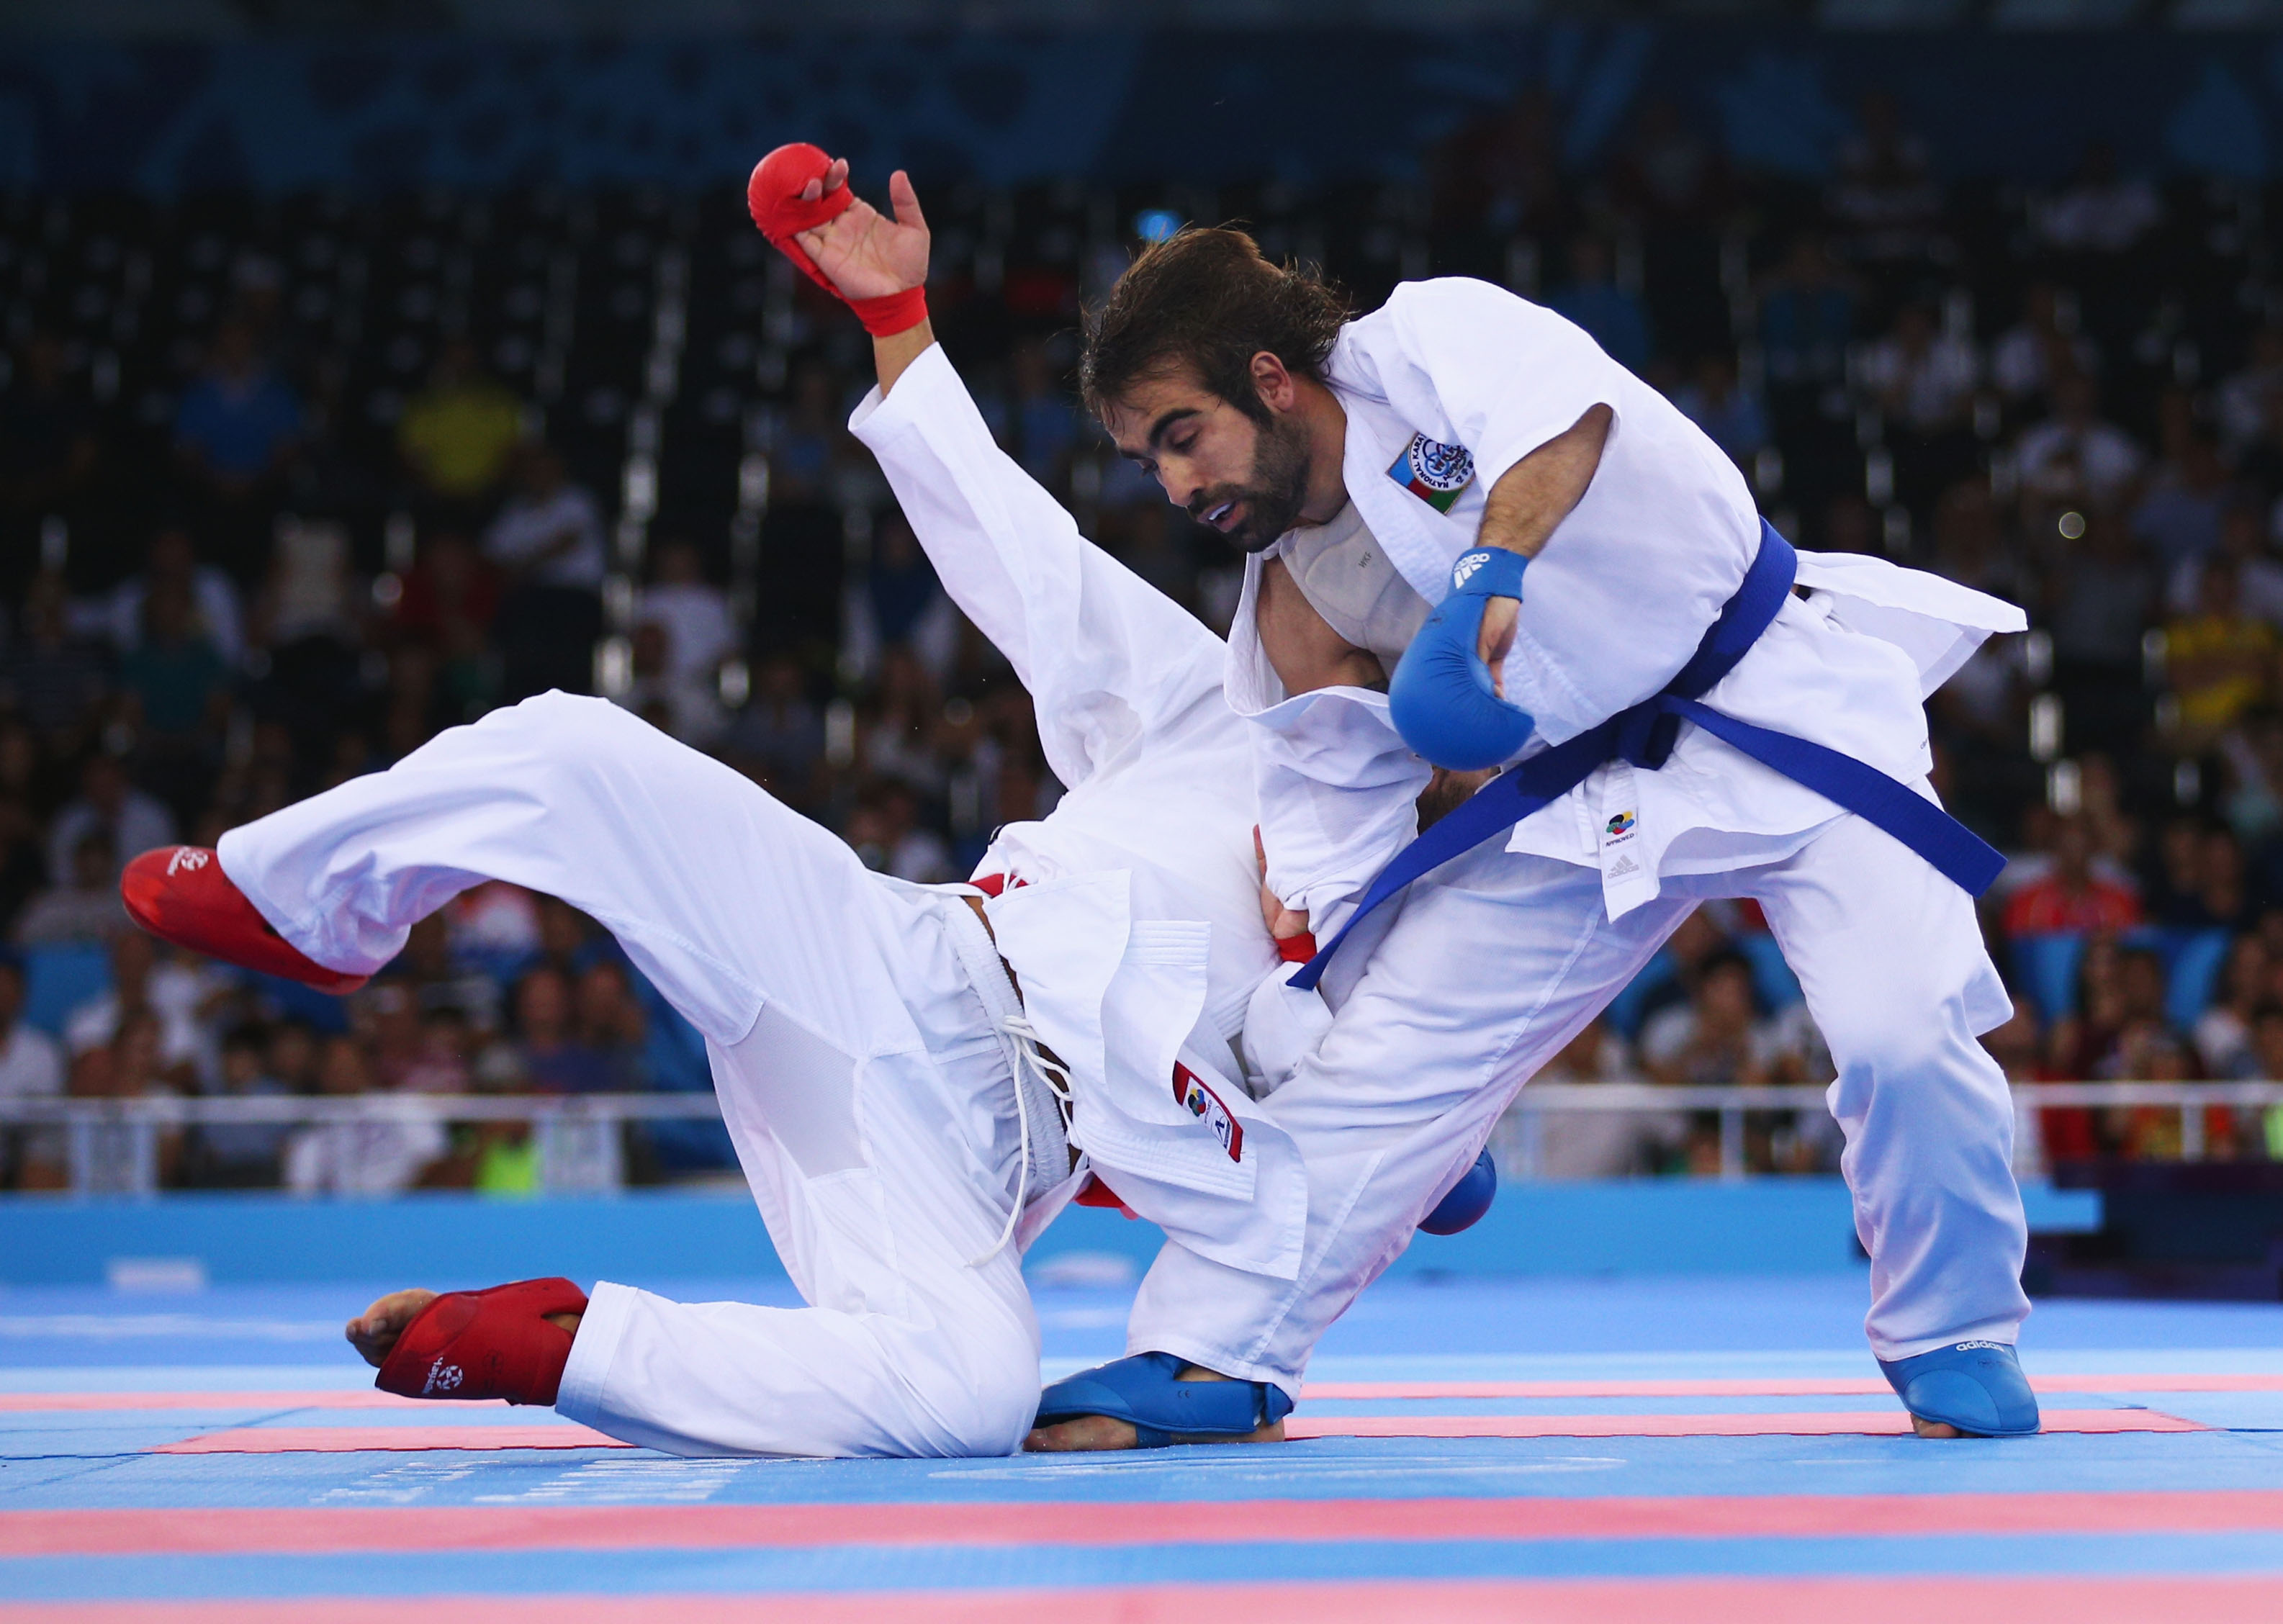 Rafael Aghayev of Azerbaijan (blue) competes with Luigi Busa of Italy (red) during the Men's Kumite -75kg final on day one of the Baku 2015 European Games, June 13, 2015.